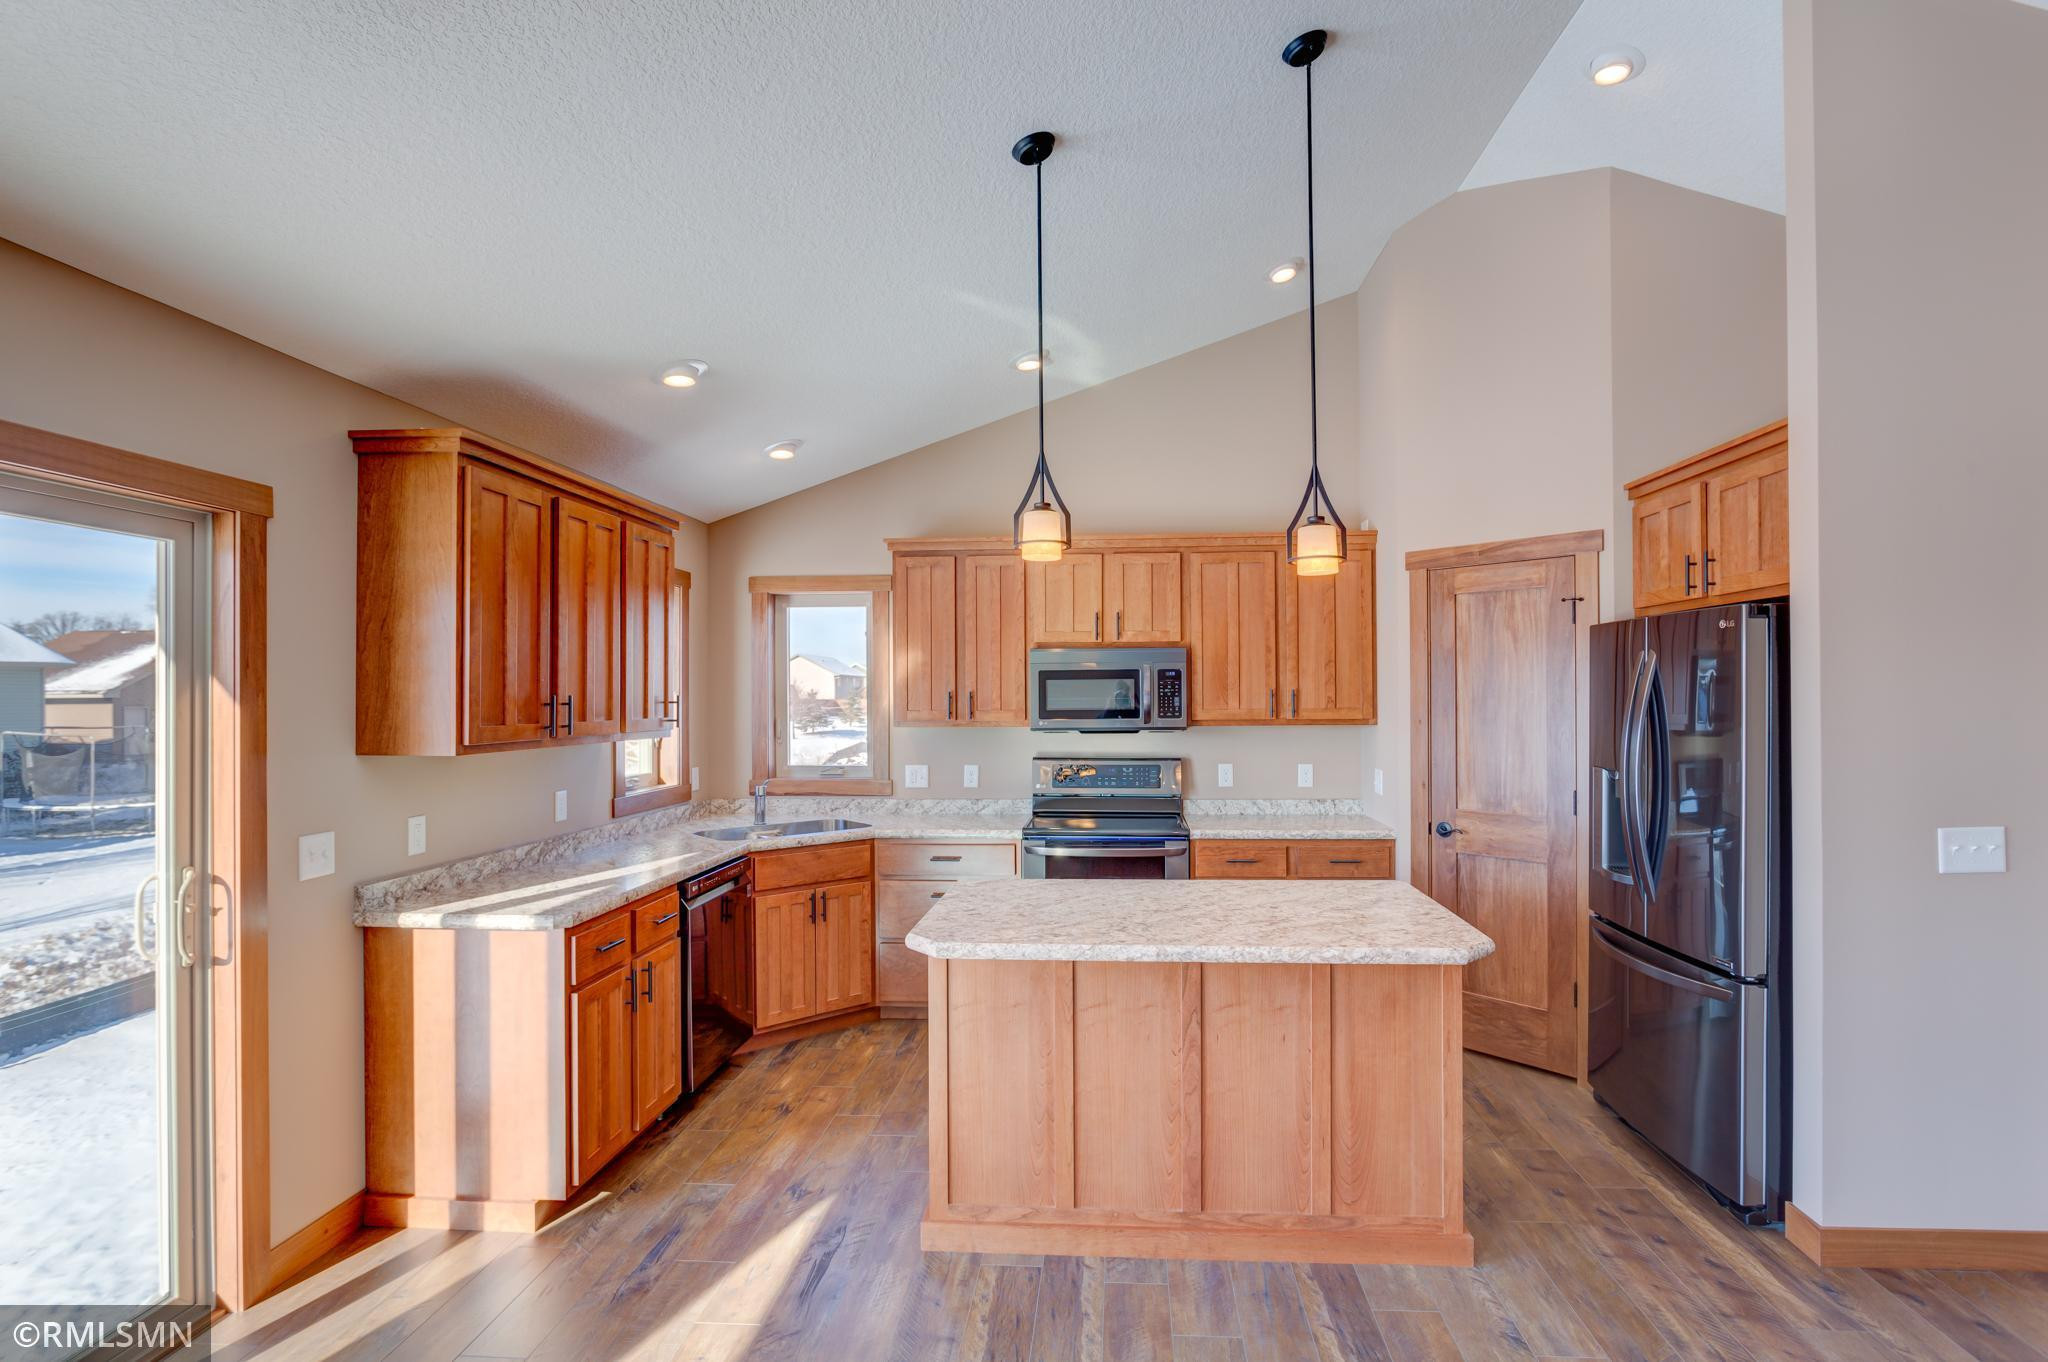 Photos are of a similar home. Not all finishings will be the same